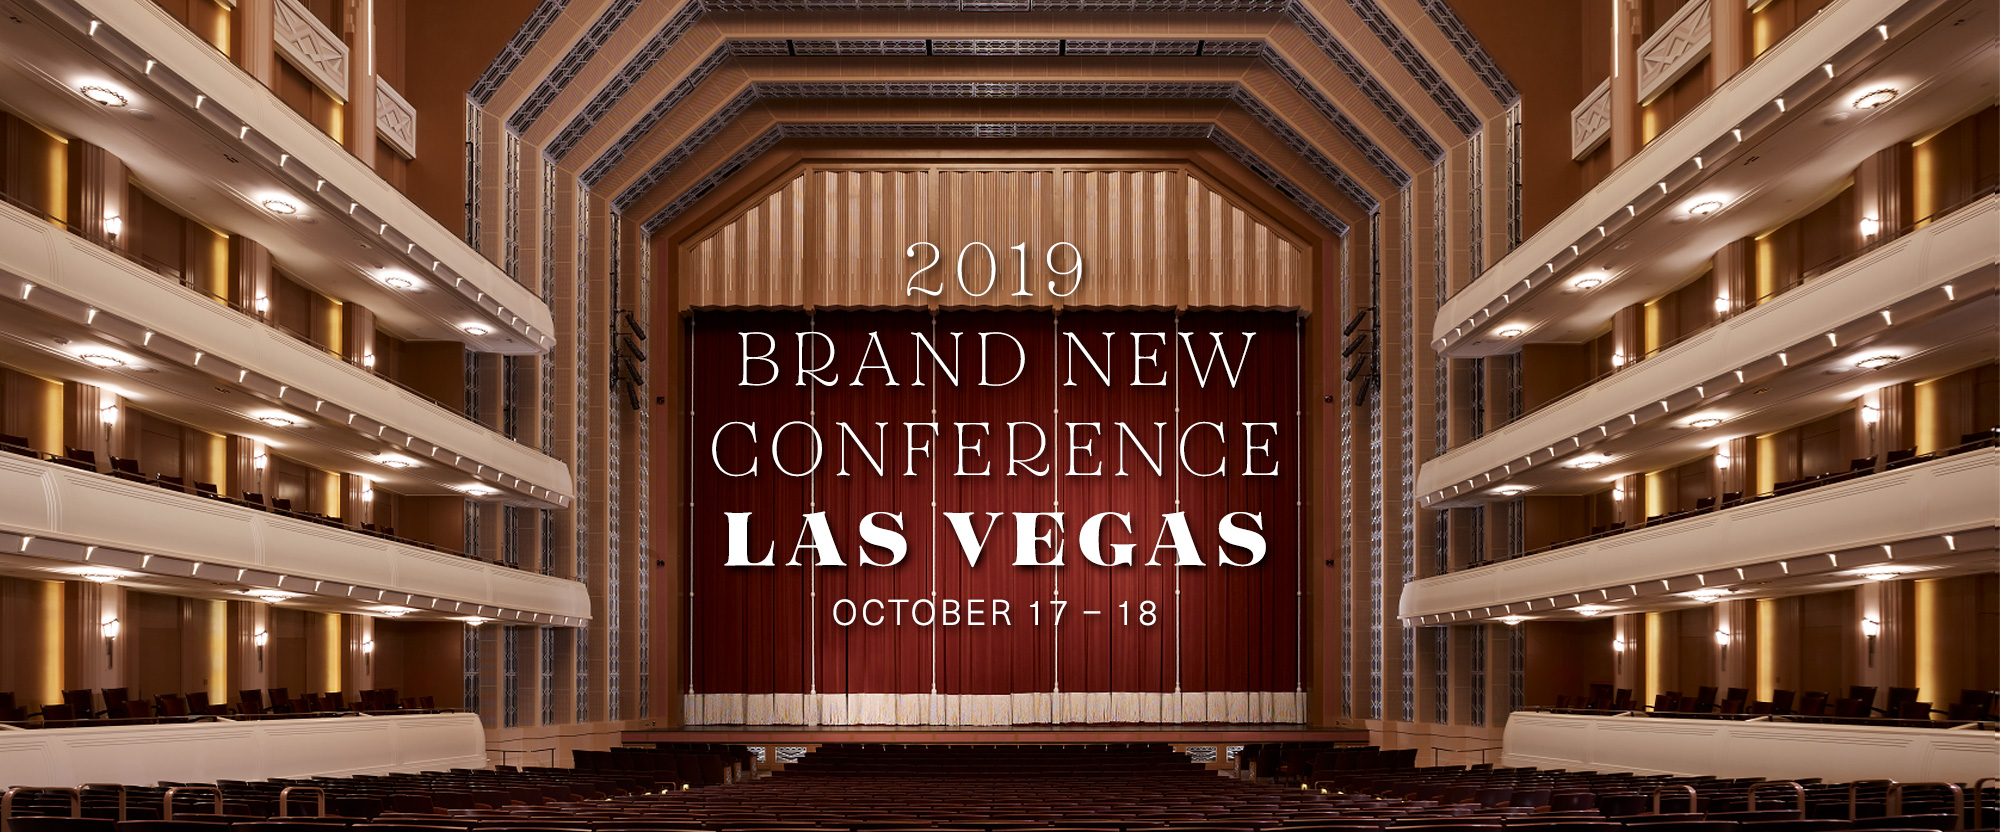 2019 Brand New Conference: Pre-sale